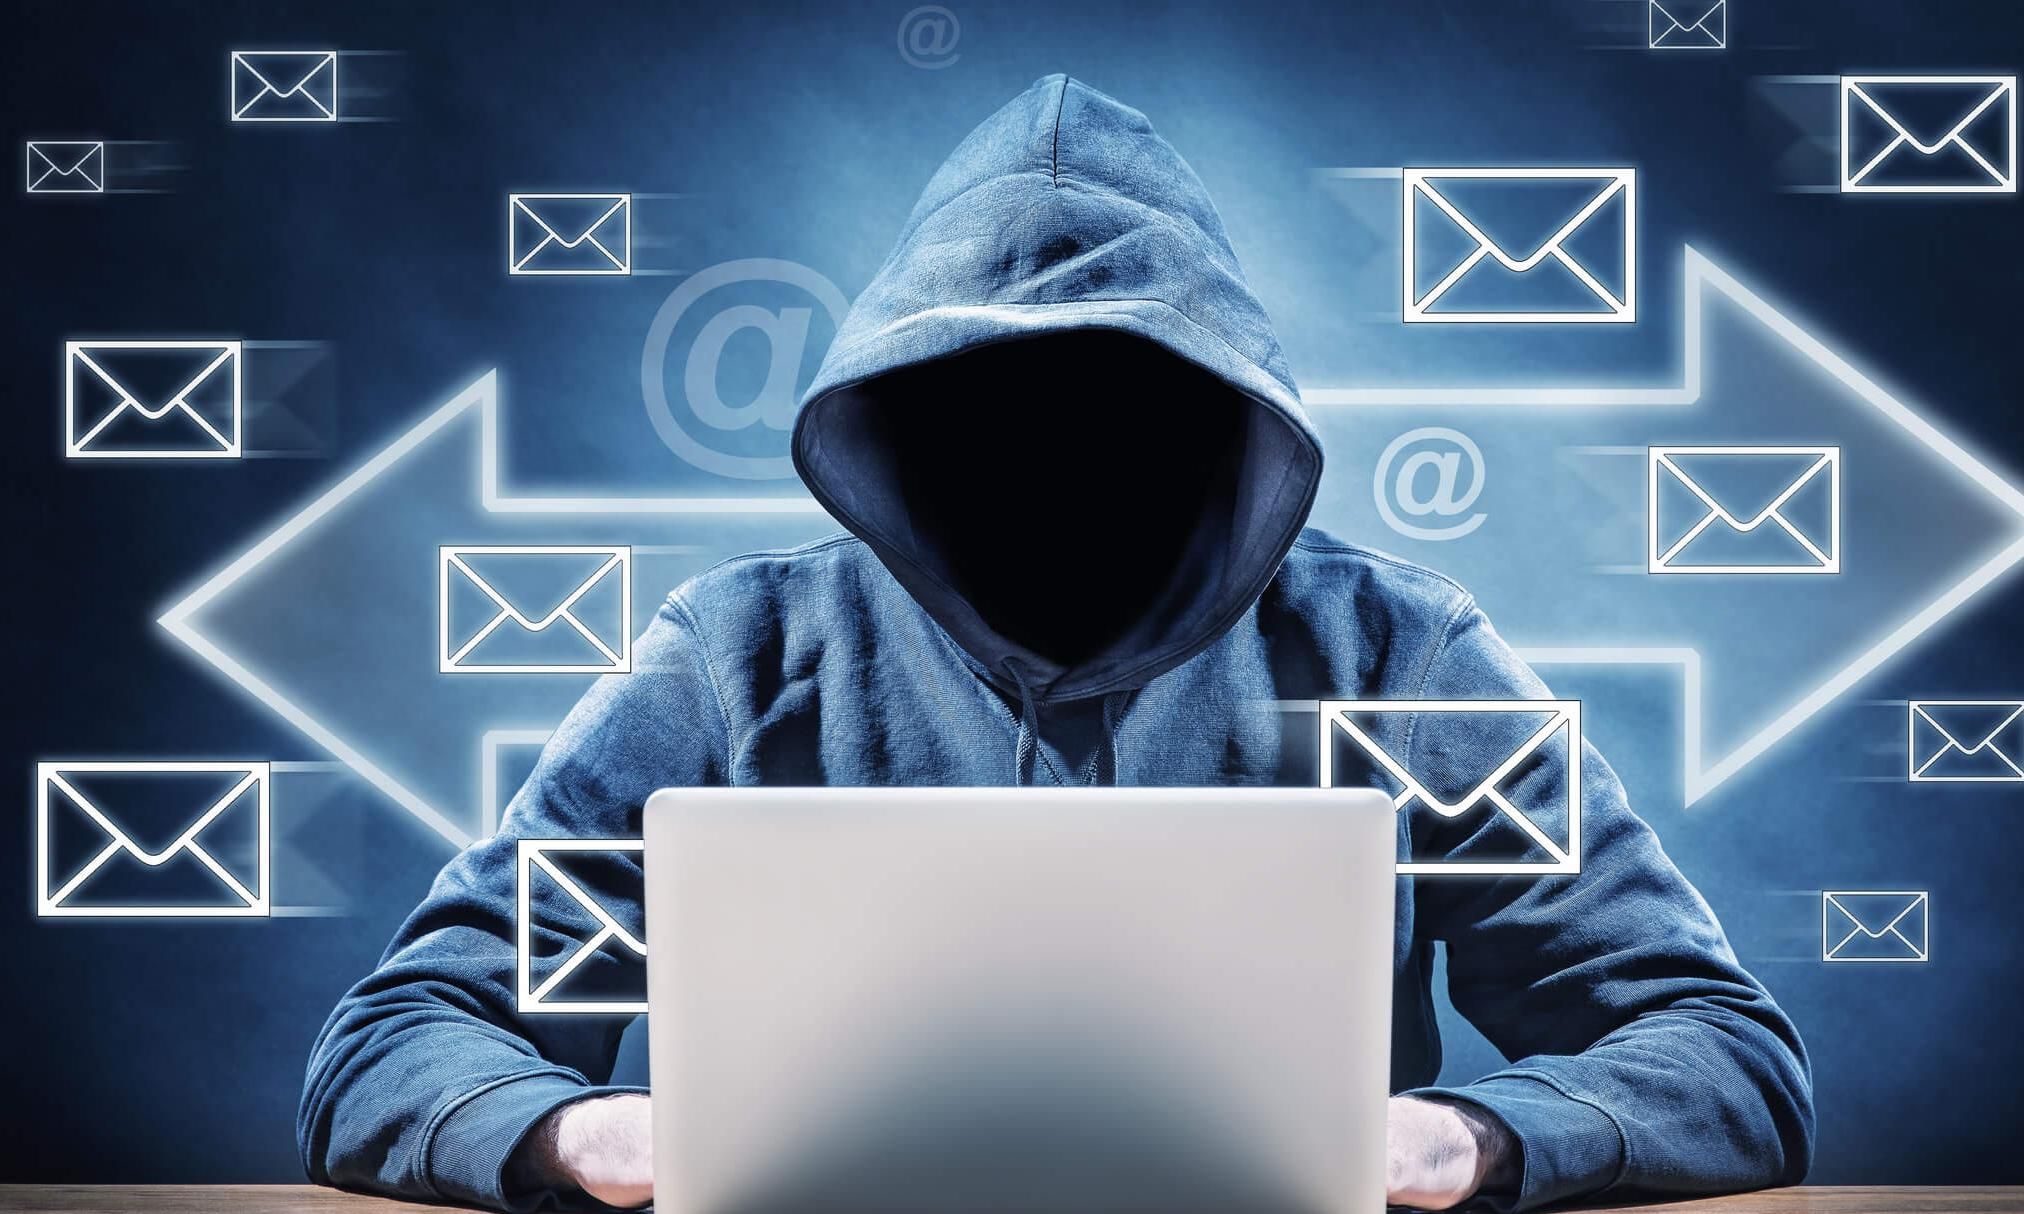 Entrapment E-mail were Sent to Several Exchanges, blackmailing for BTC